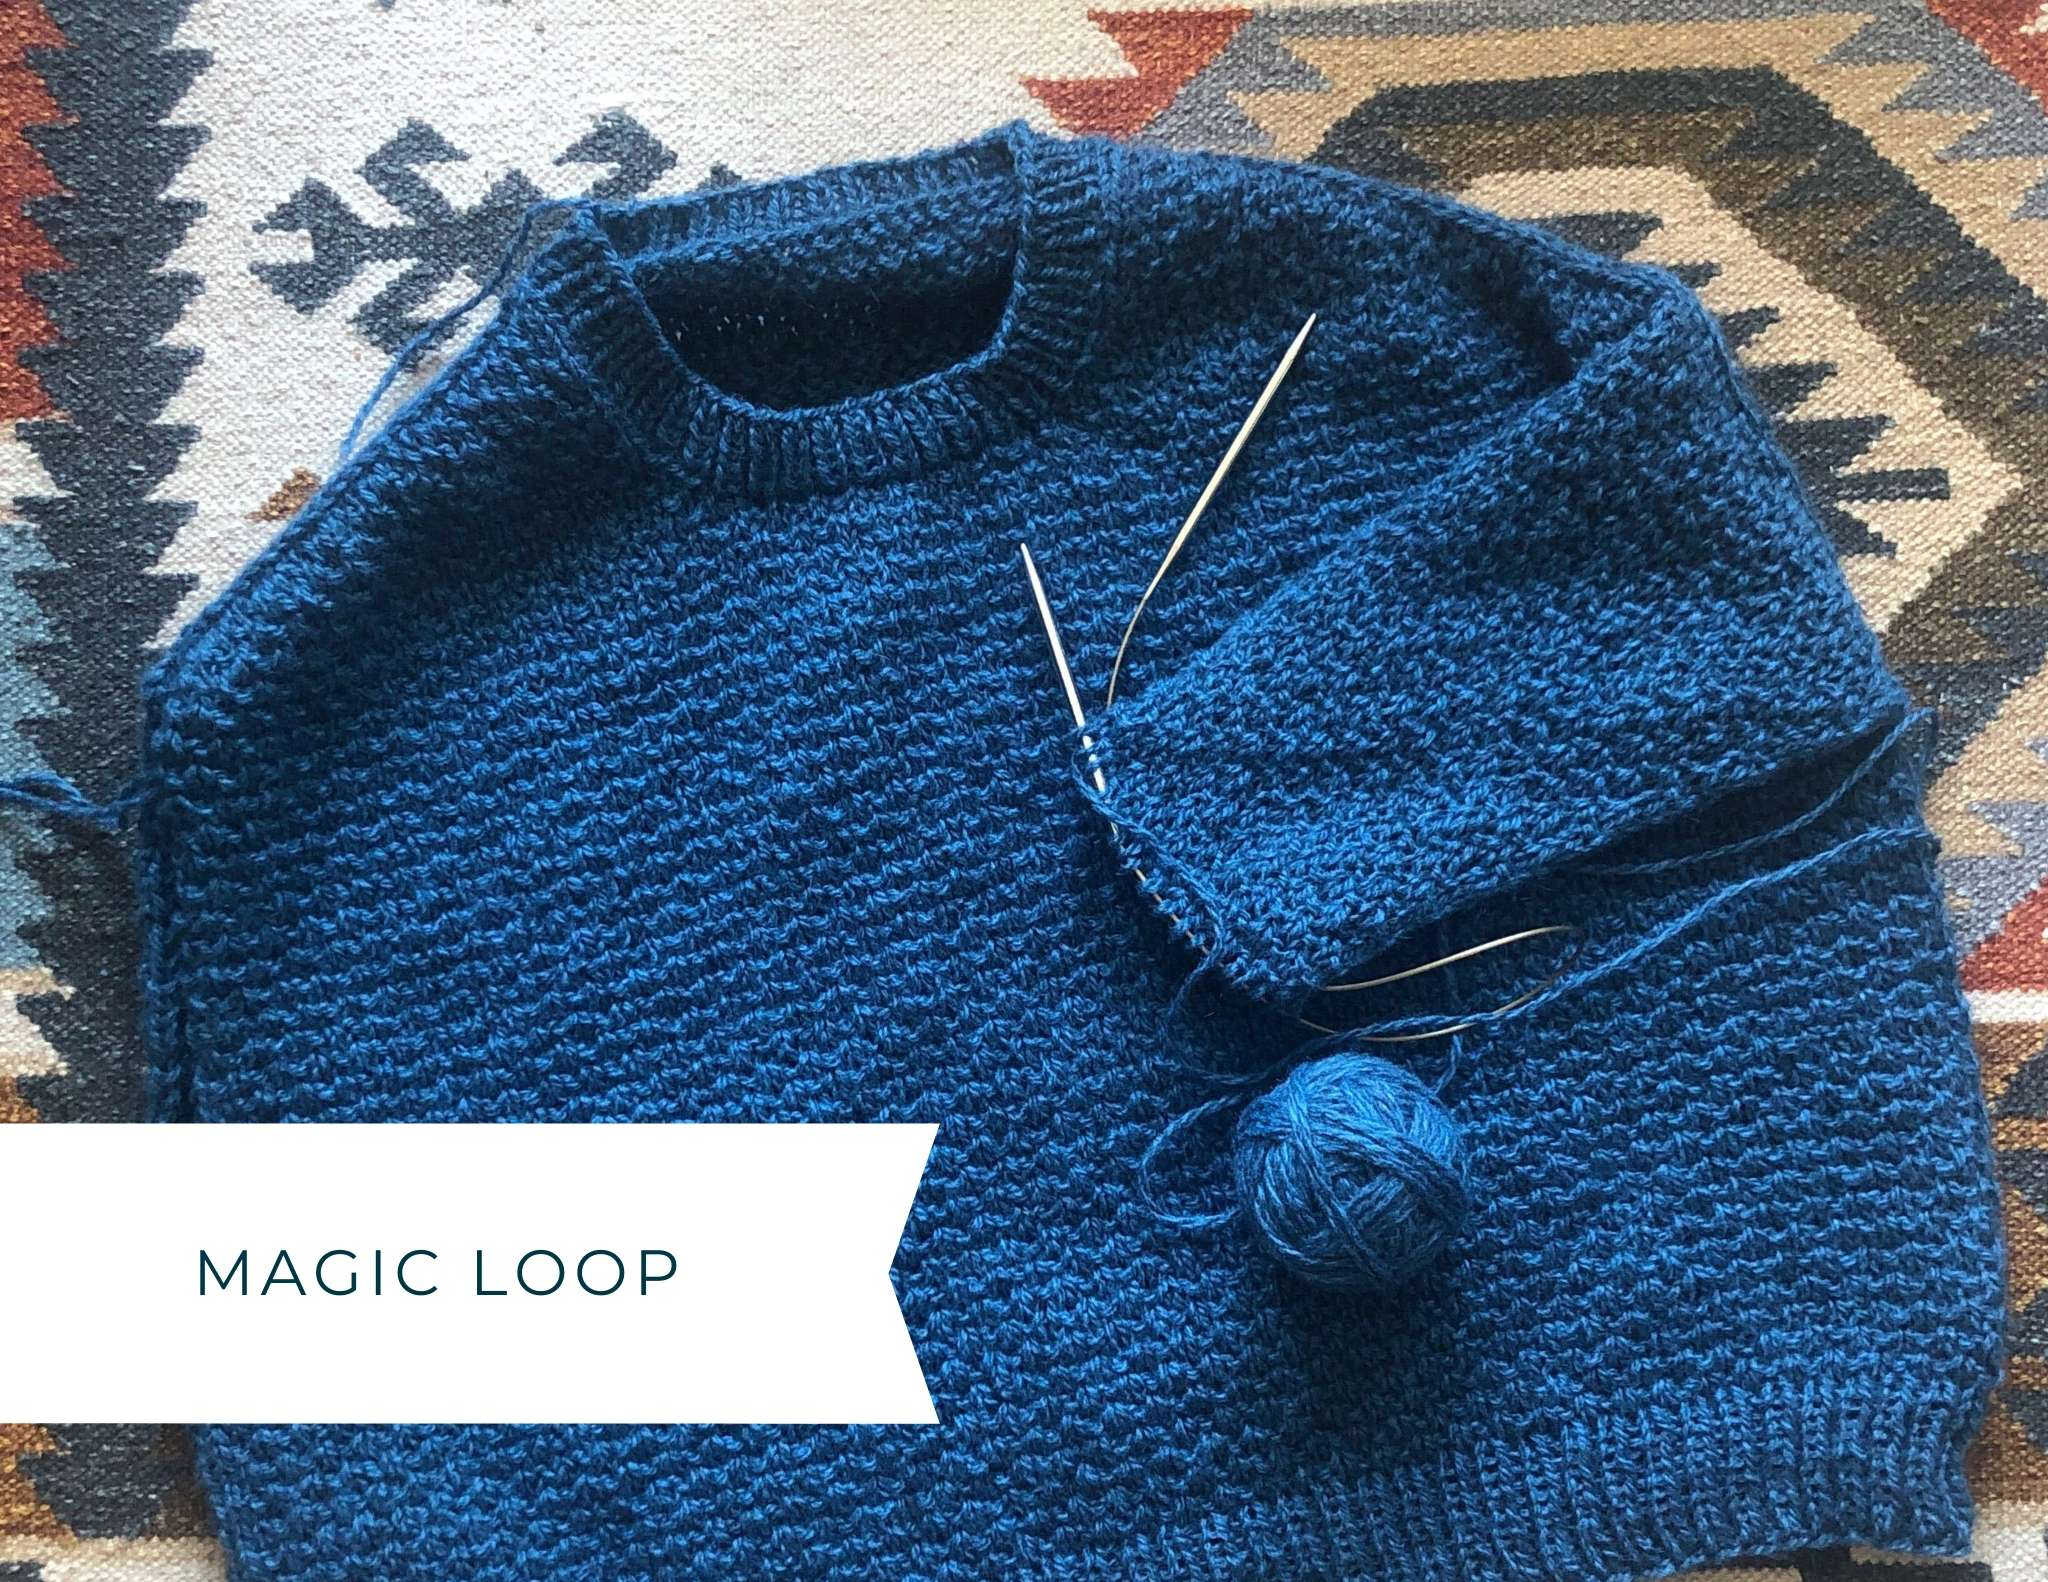 Photo showing a blue glenmore with the sleeve in progress on one long circular needle with a loop of the cable pulled out. The image has a text overlay saying magic loop.